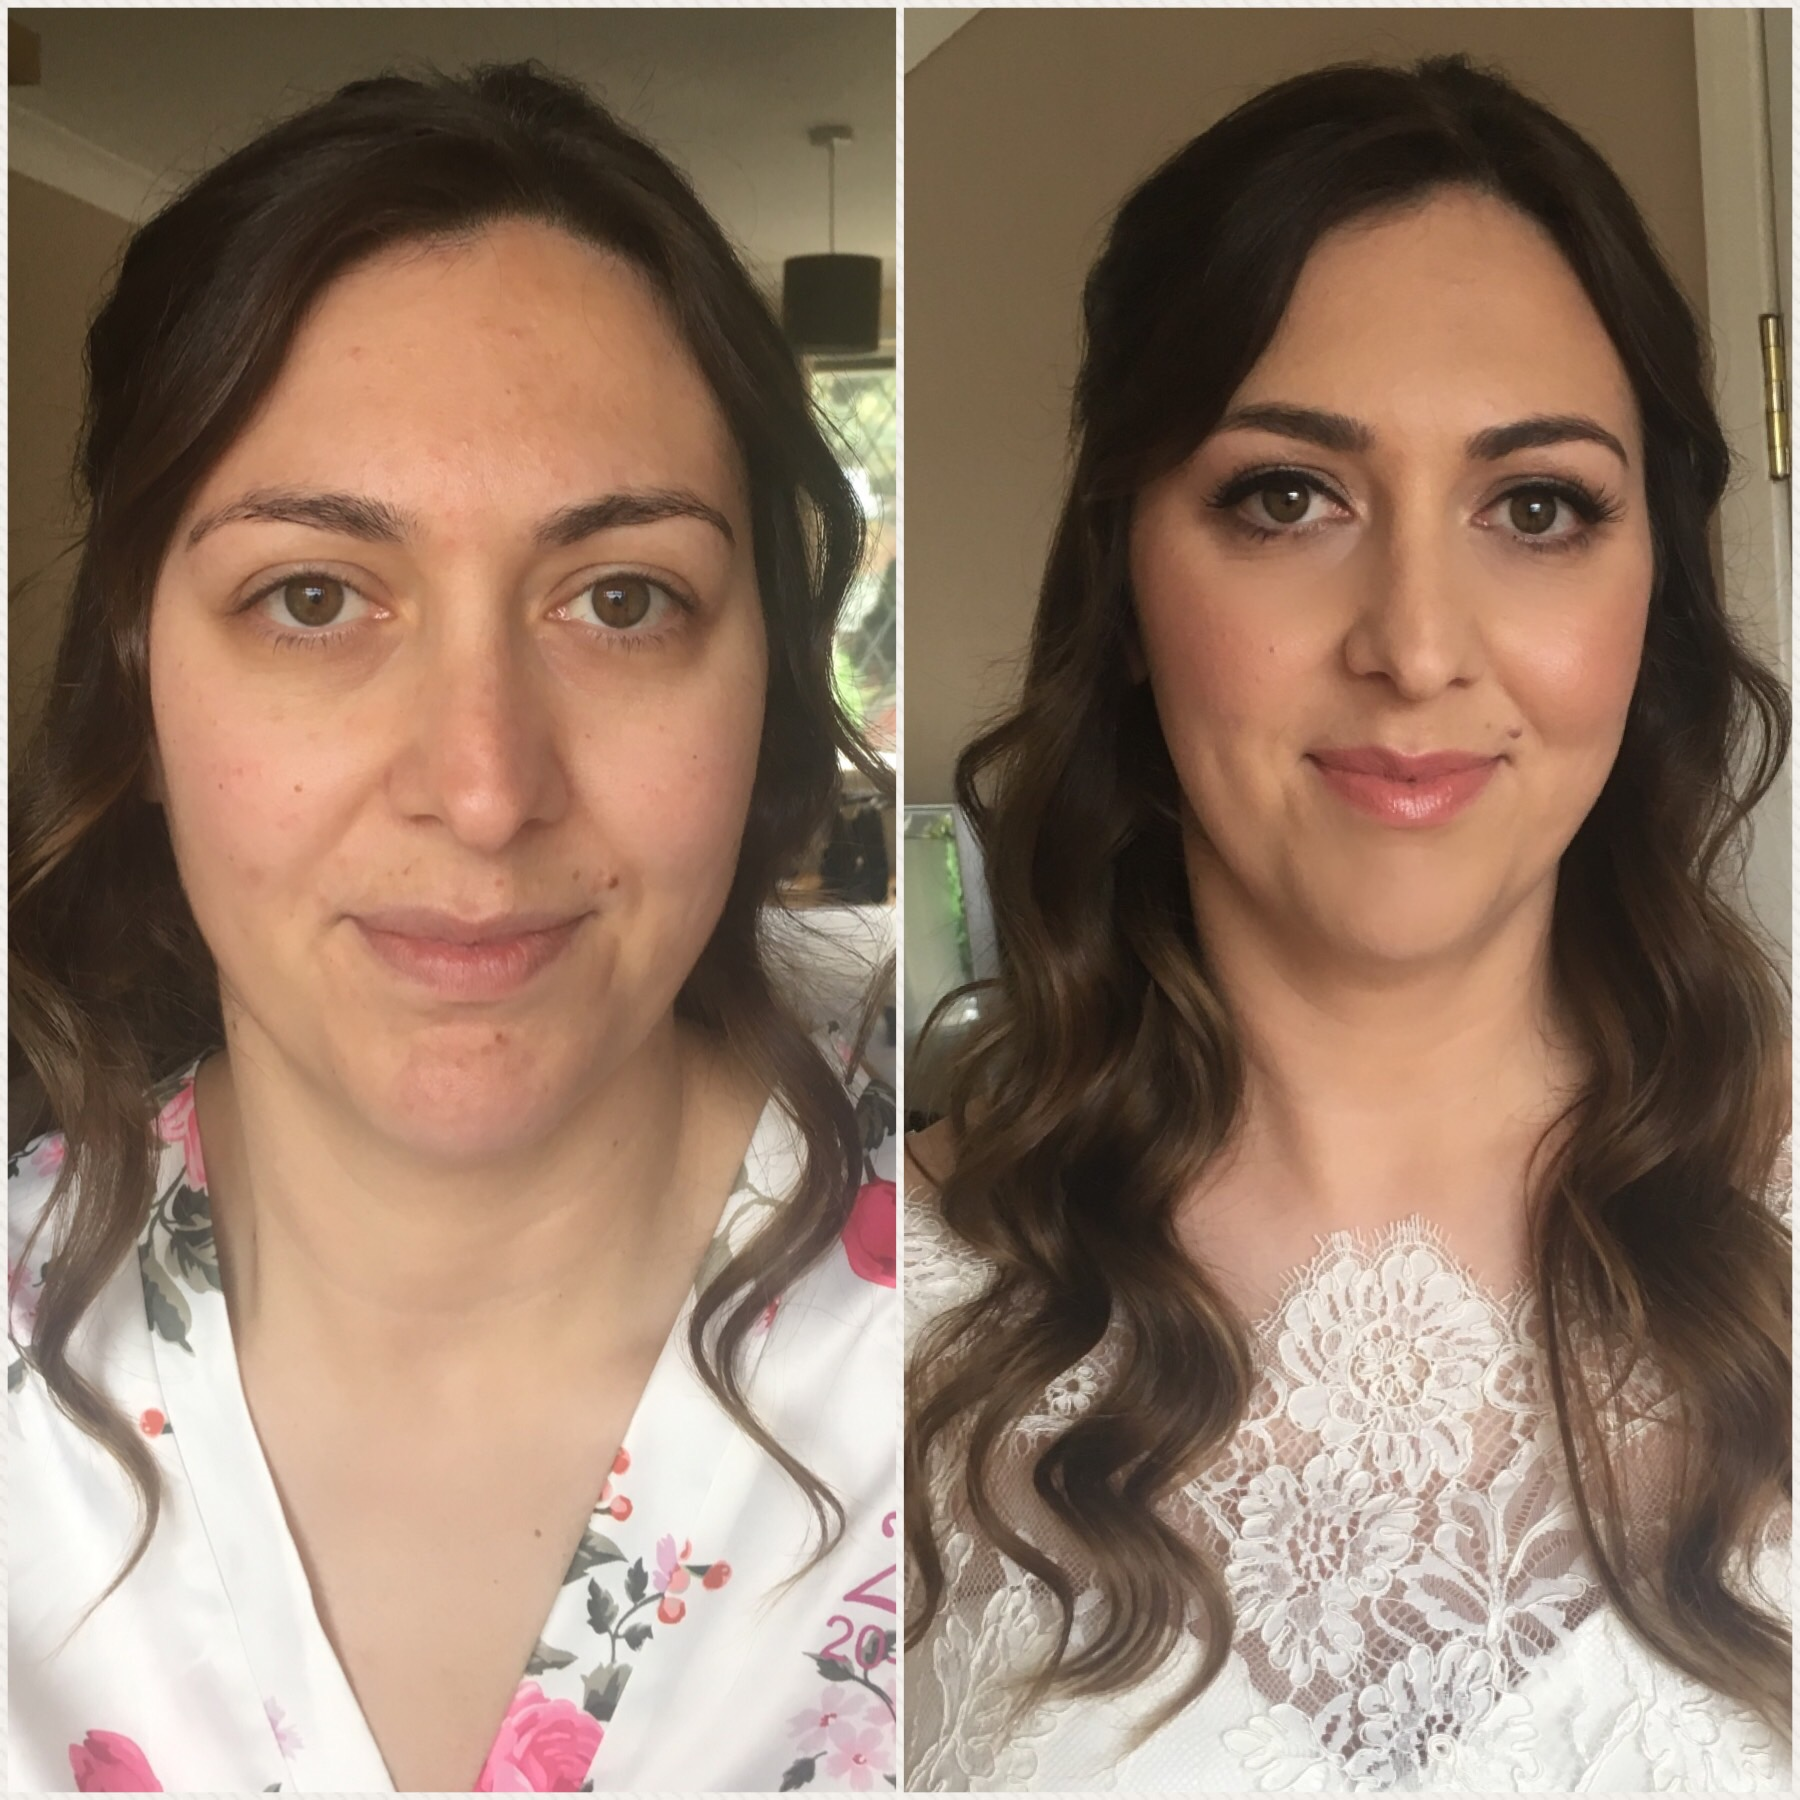 Before and after makeup. Make-up by Tina Brocklebank.